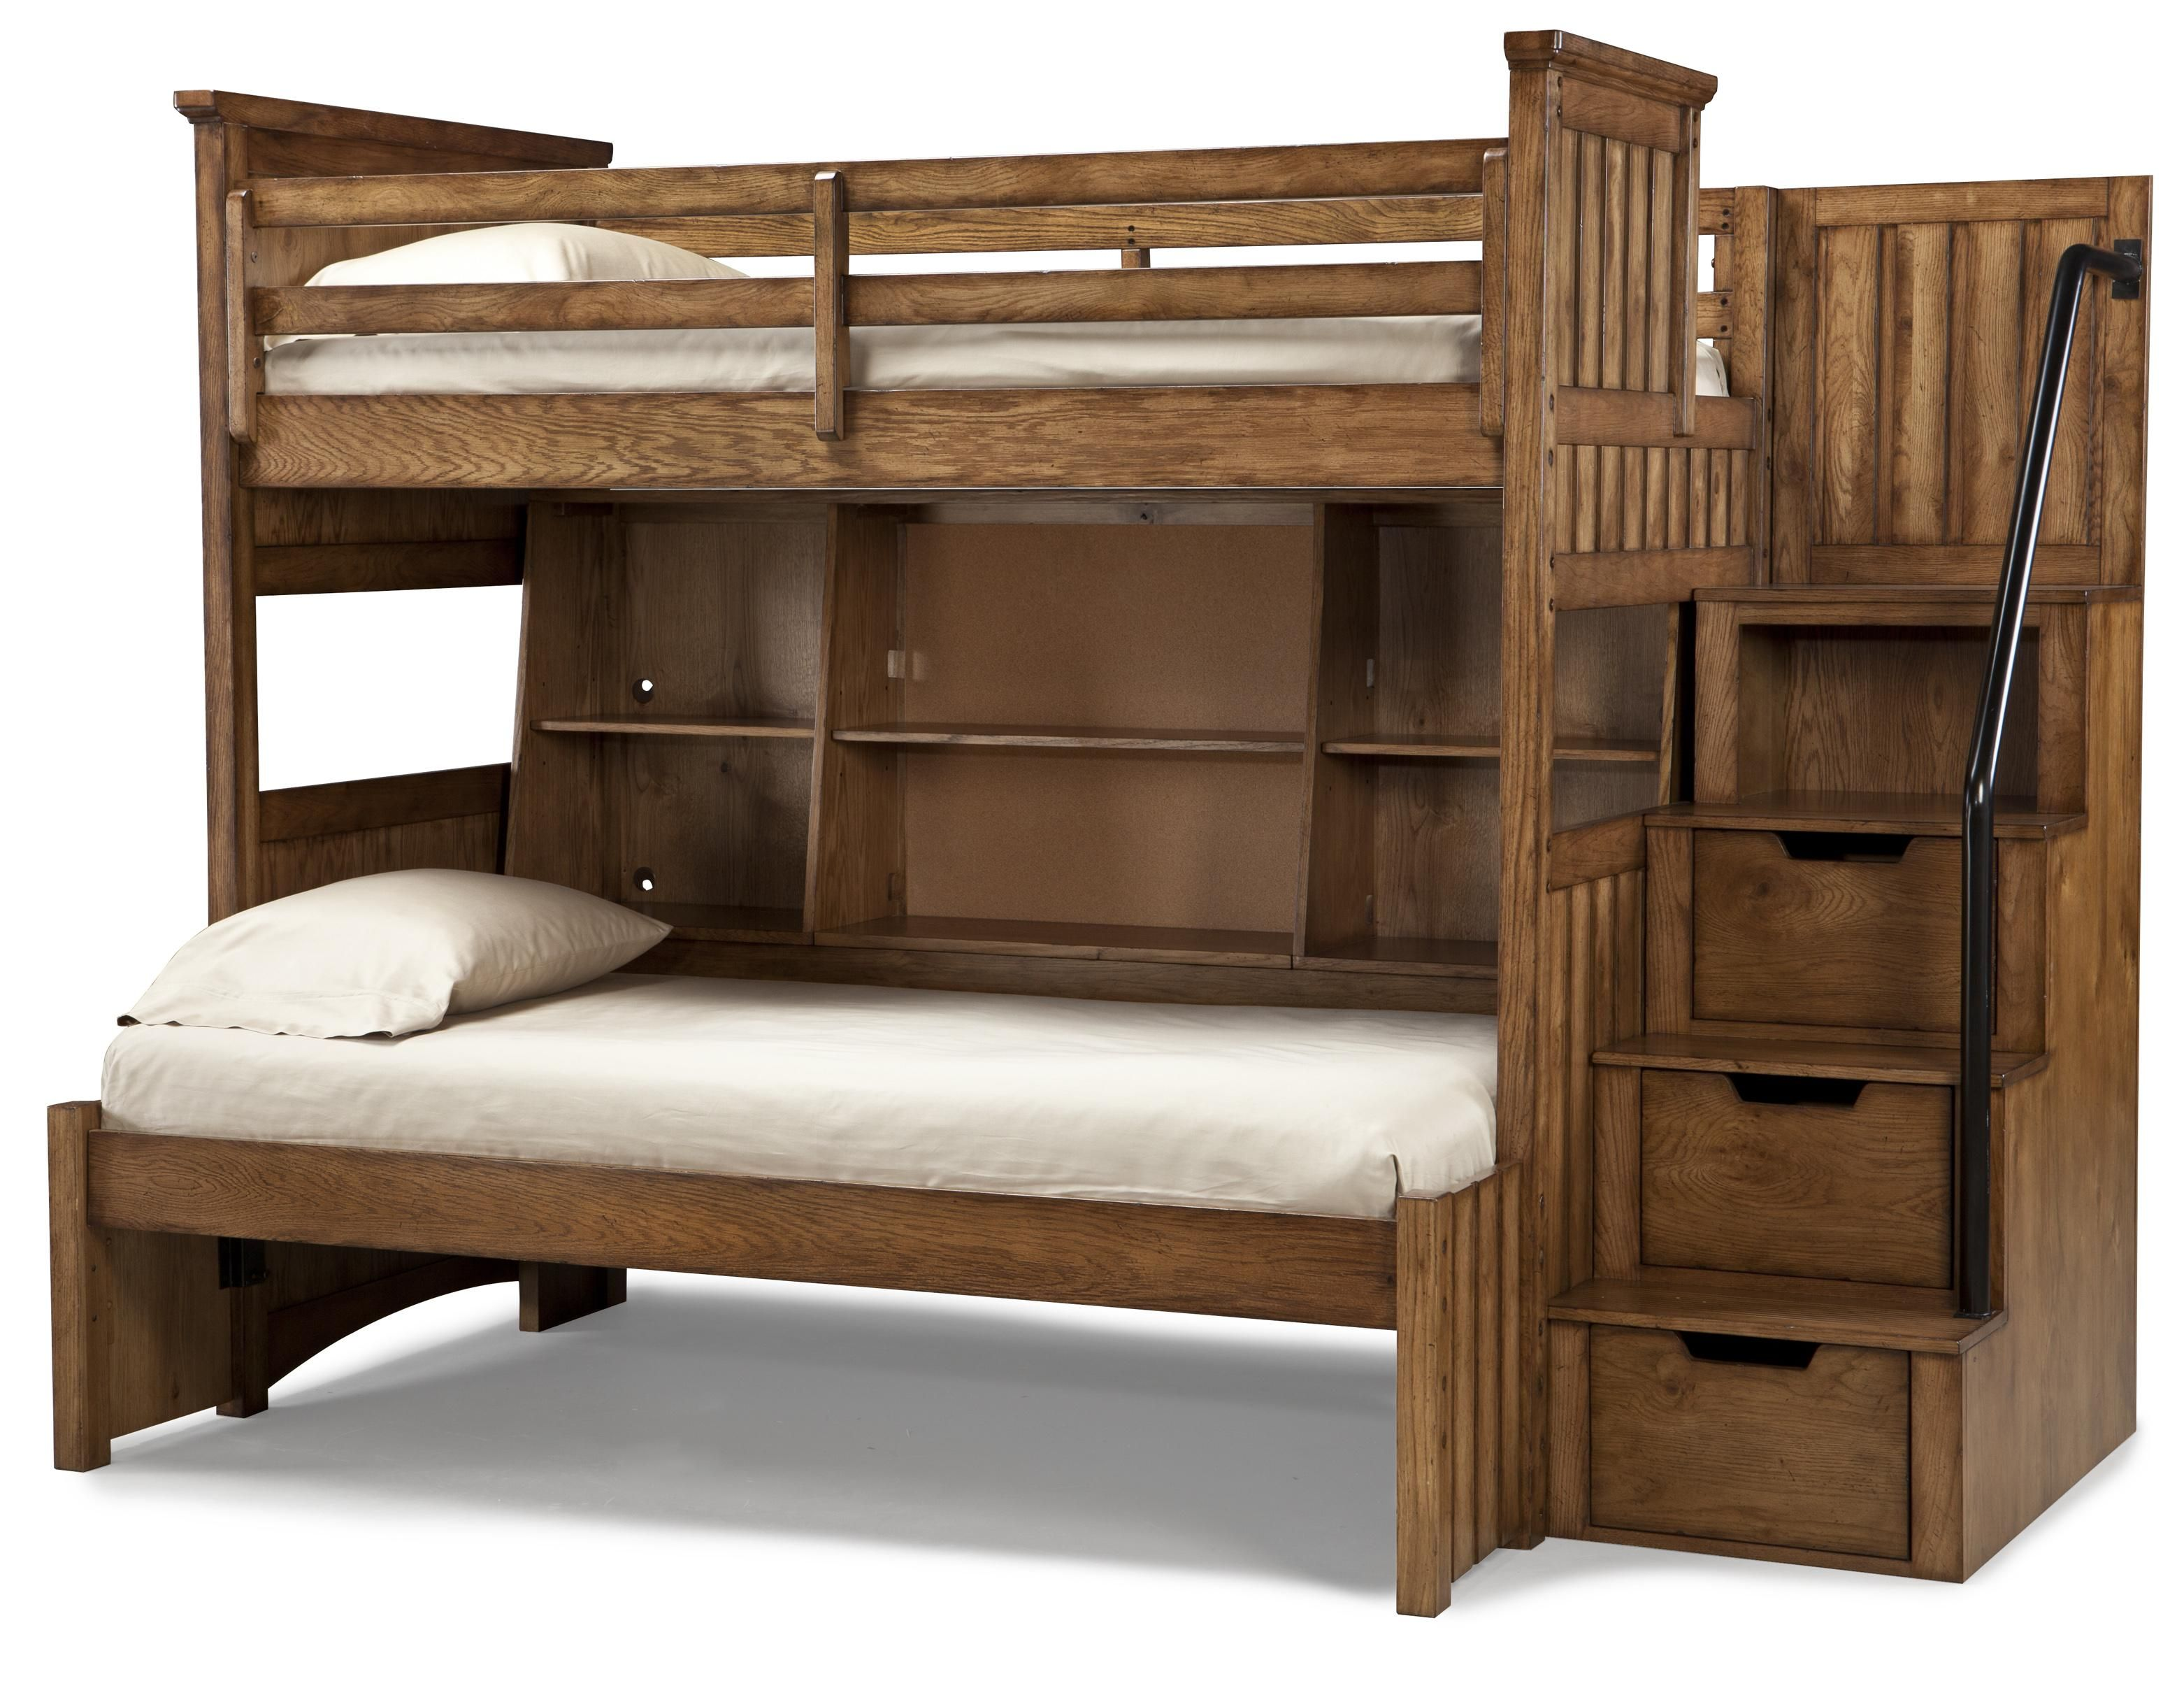 bed elegant timber lodge twin over bookcase full bunk bed with storage stairs and cork message board also white bed linen and pillowcase astonishing twin